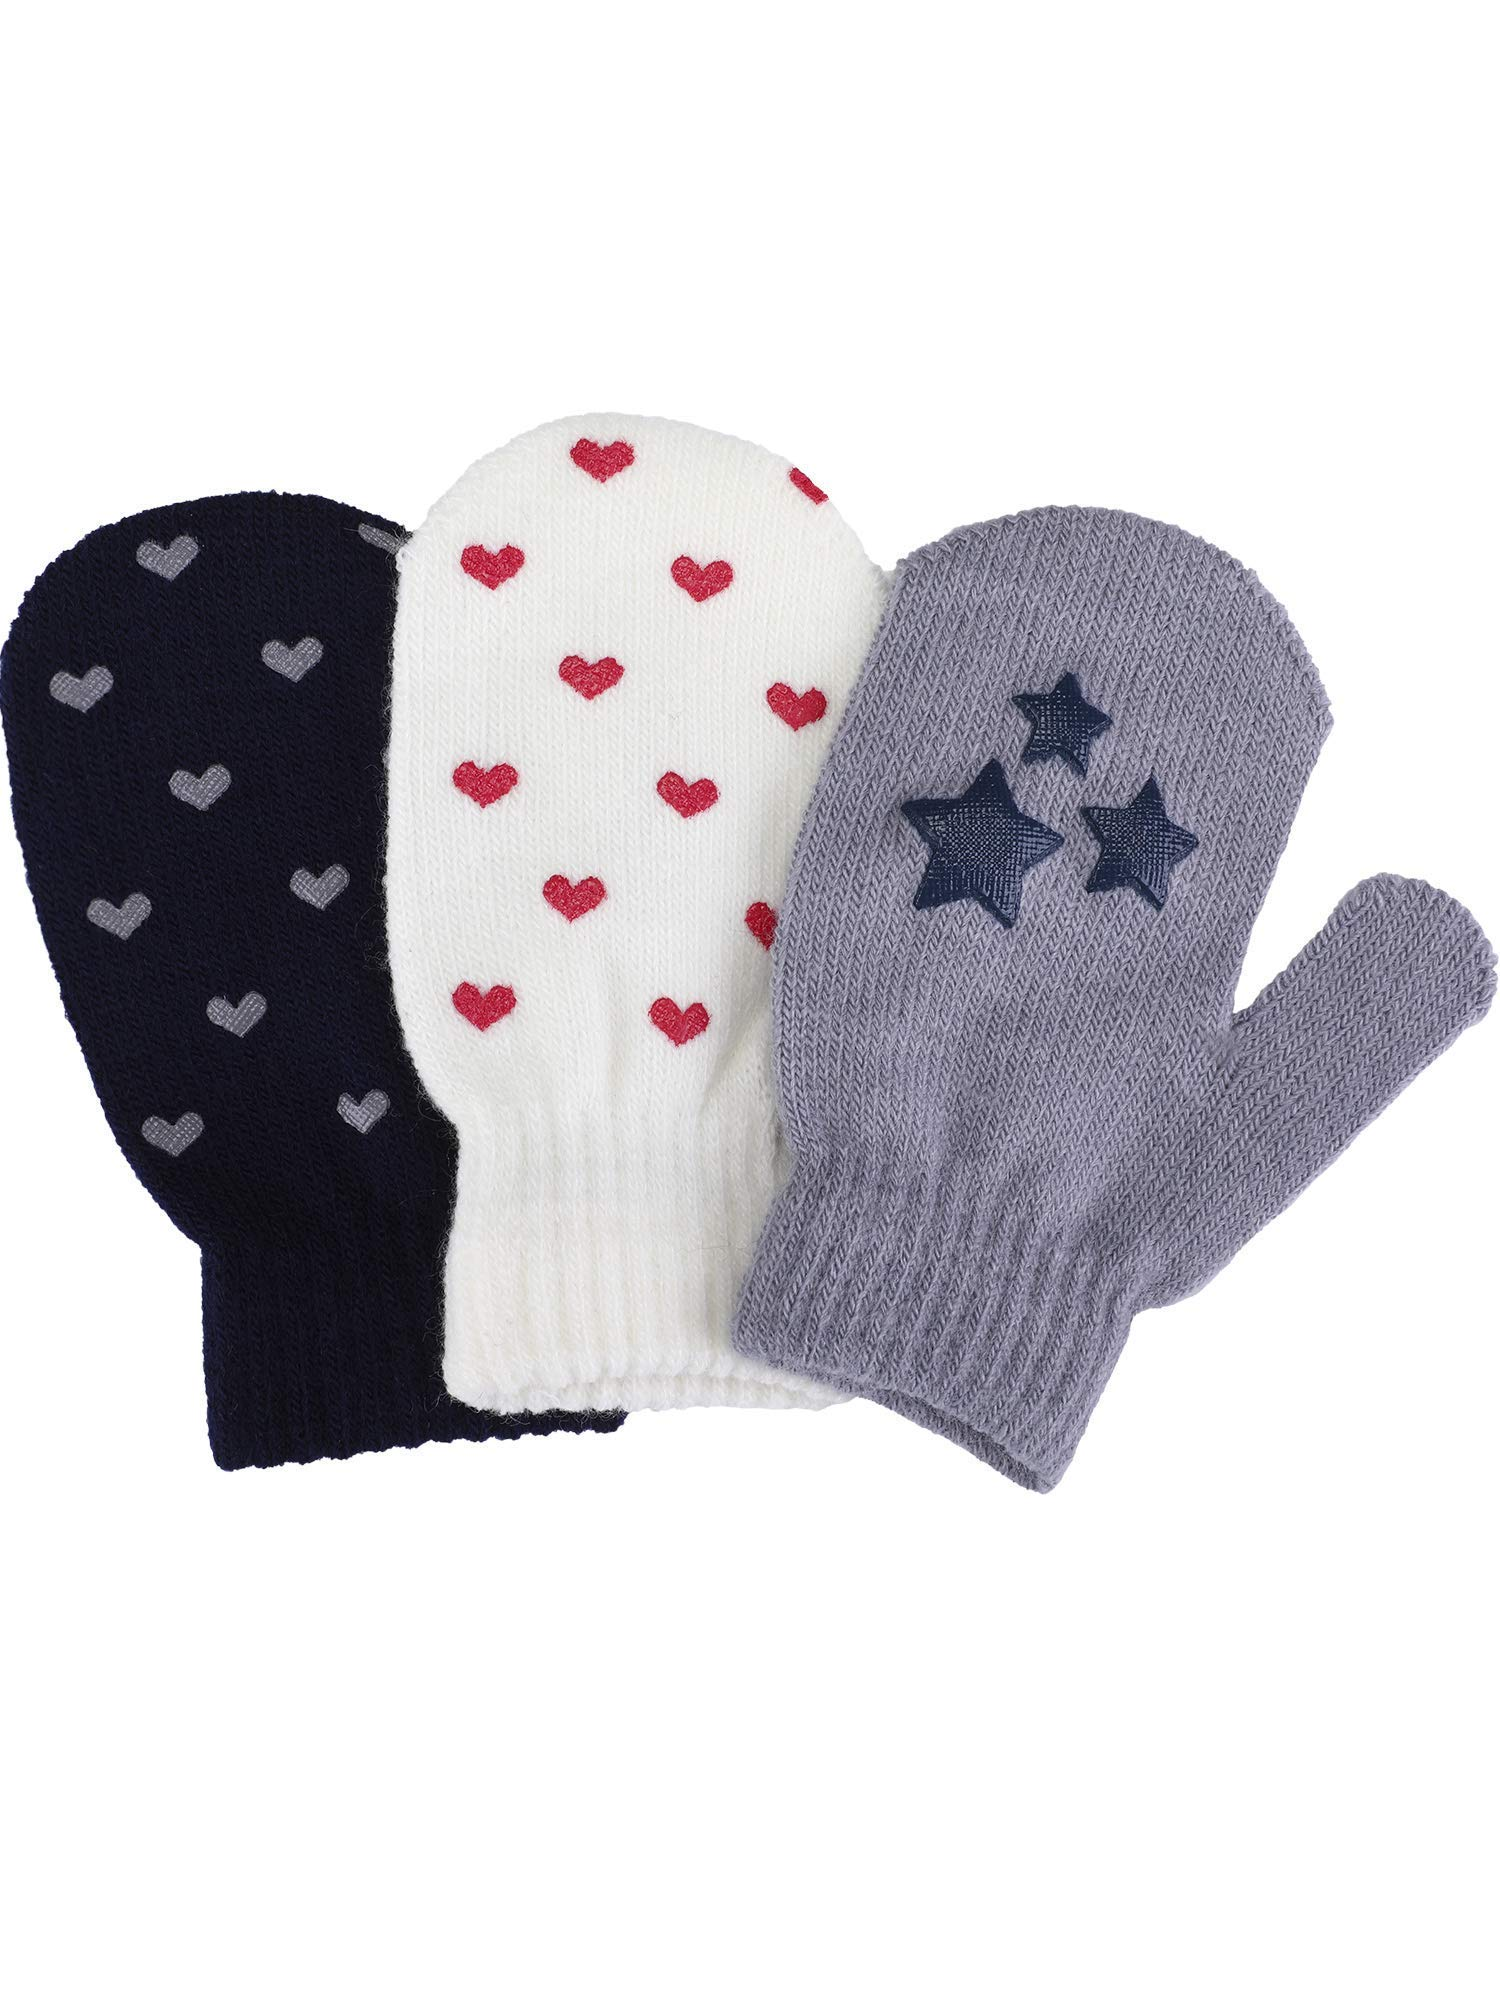 Best Rated in Girls' Novelty Gloves & Mittens & Helpful